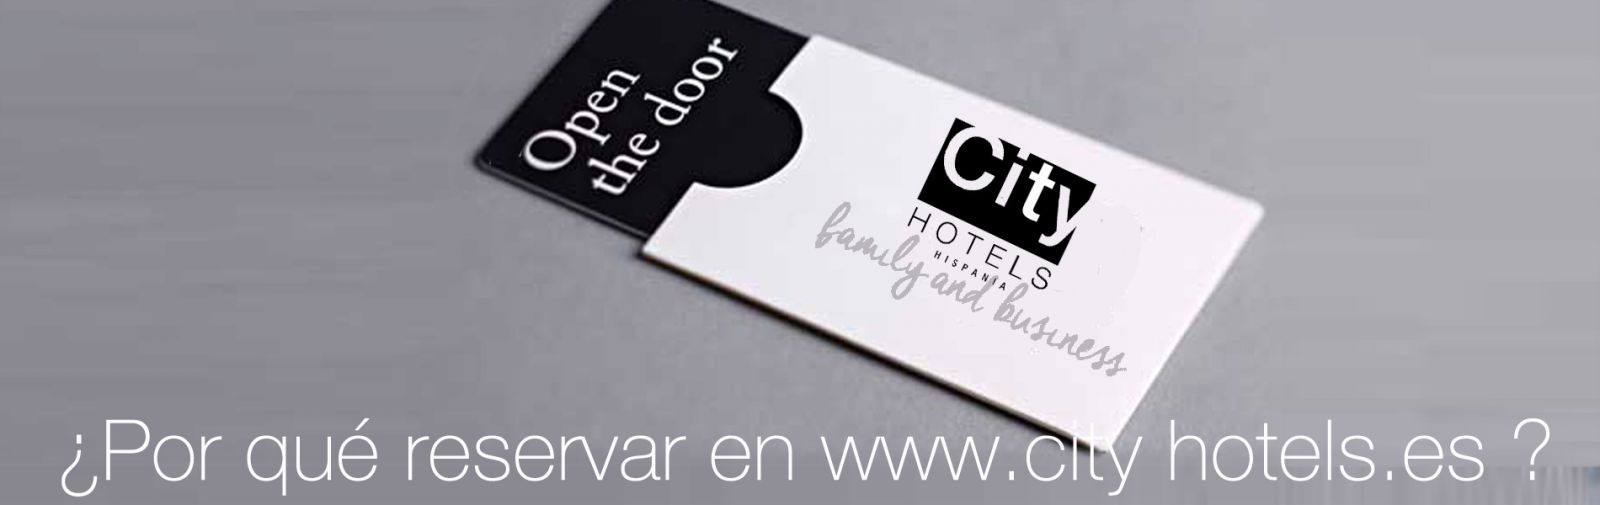 Por qué reservar en City Hotels Hispania